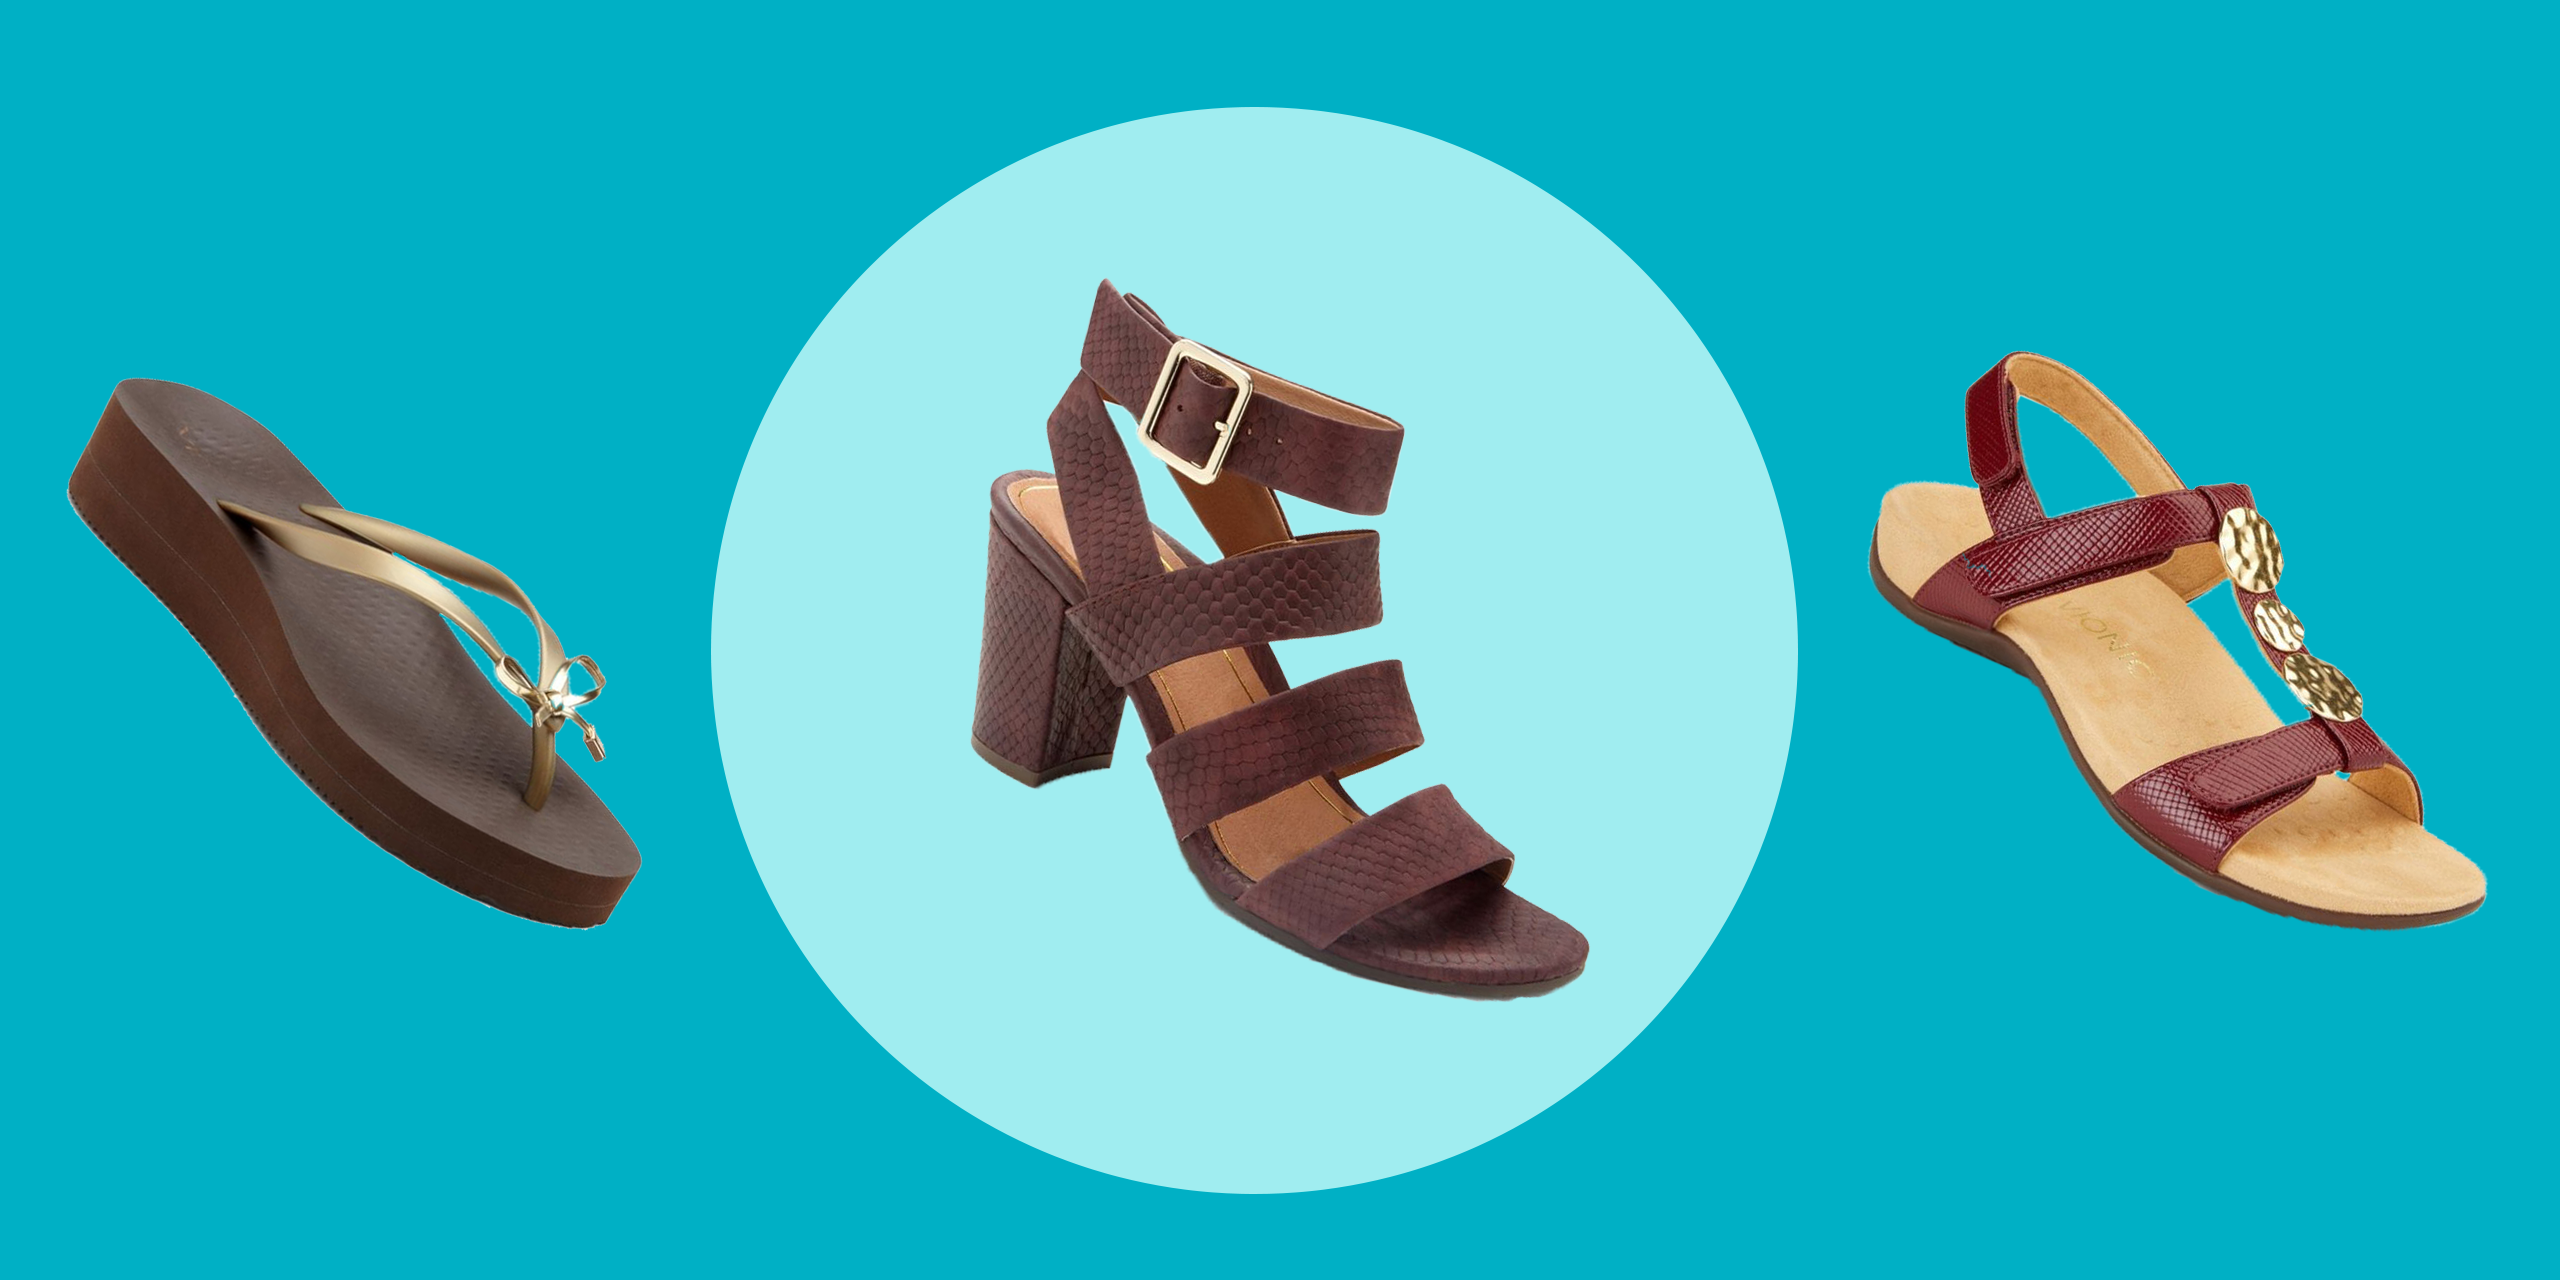 These Vionic Sandals Are 30% Off